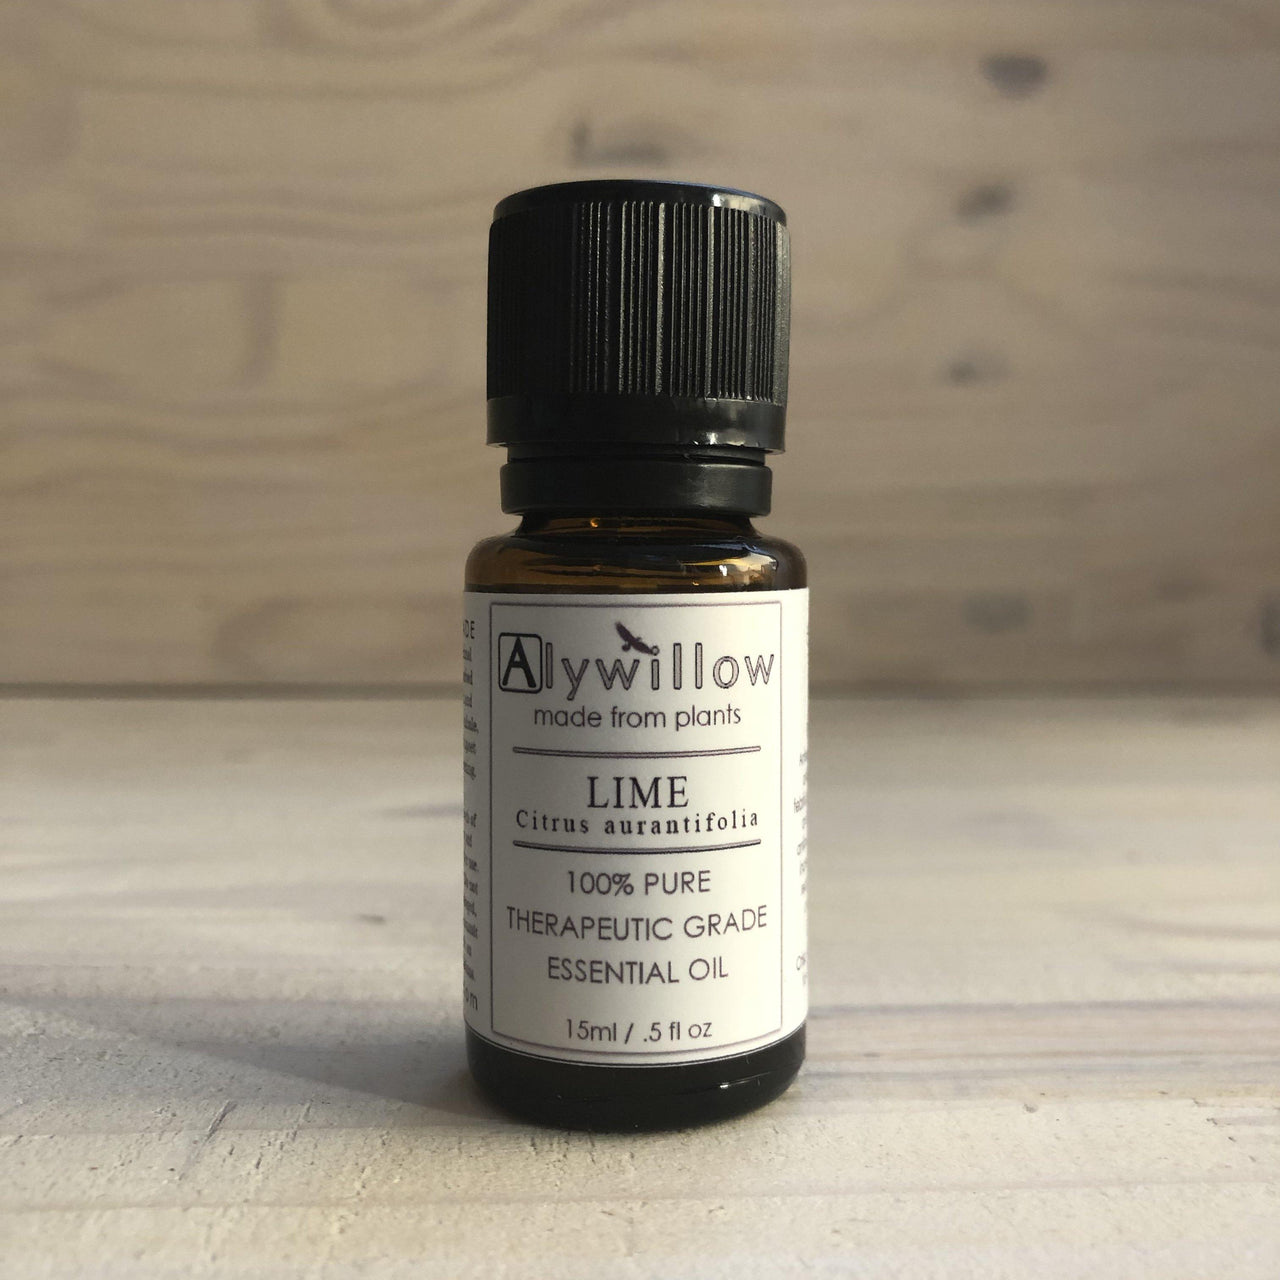 Lime Essential Oil - Alywillow